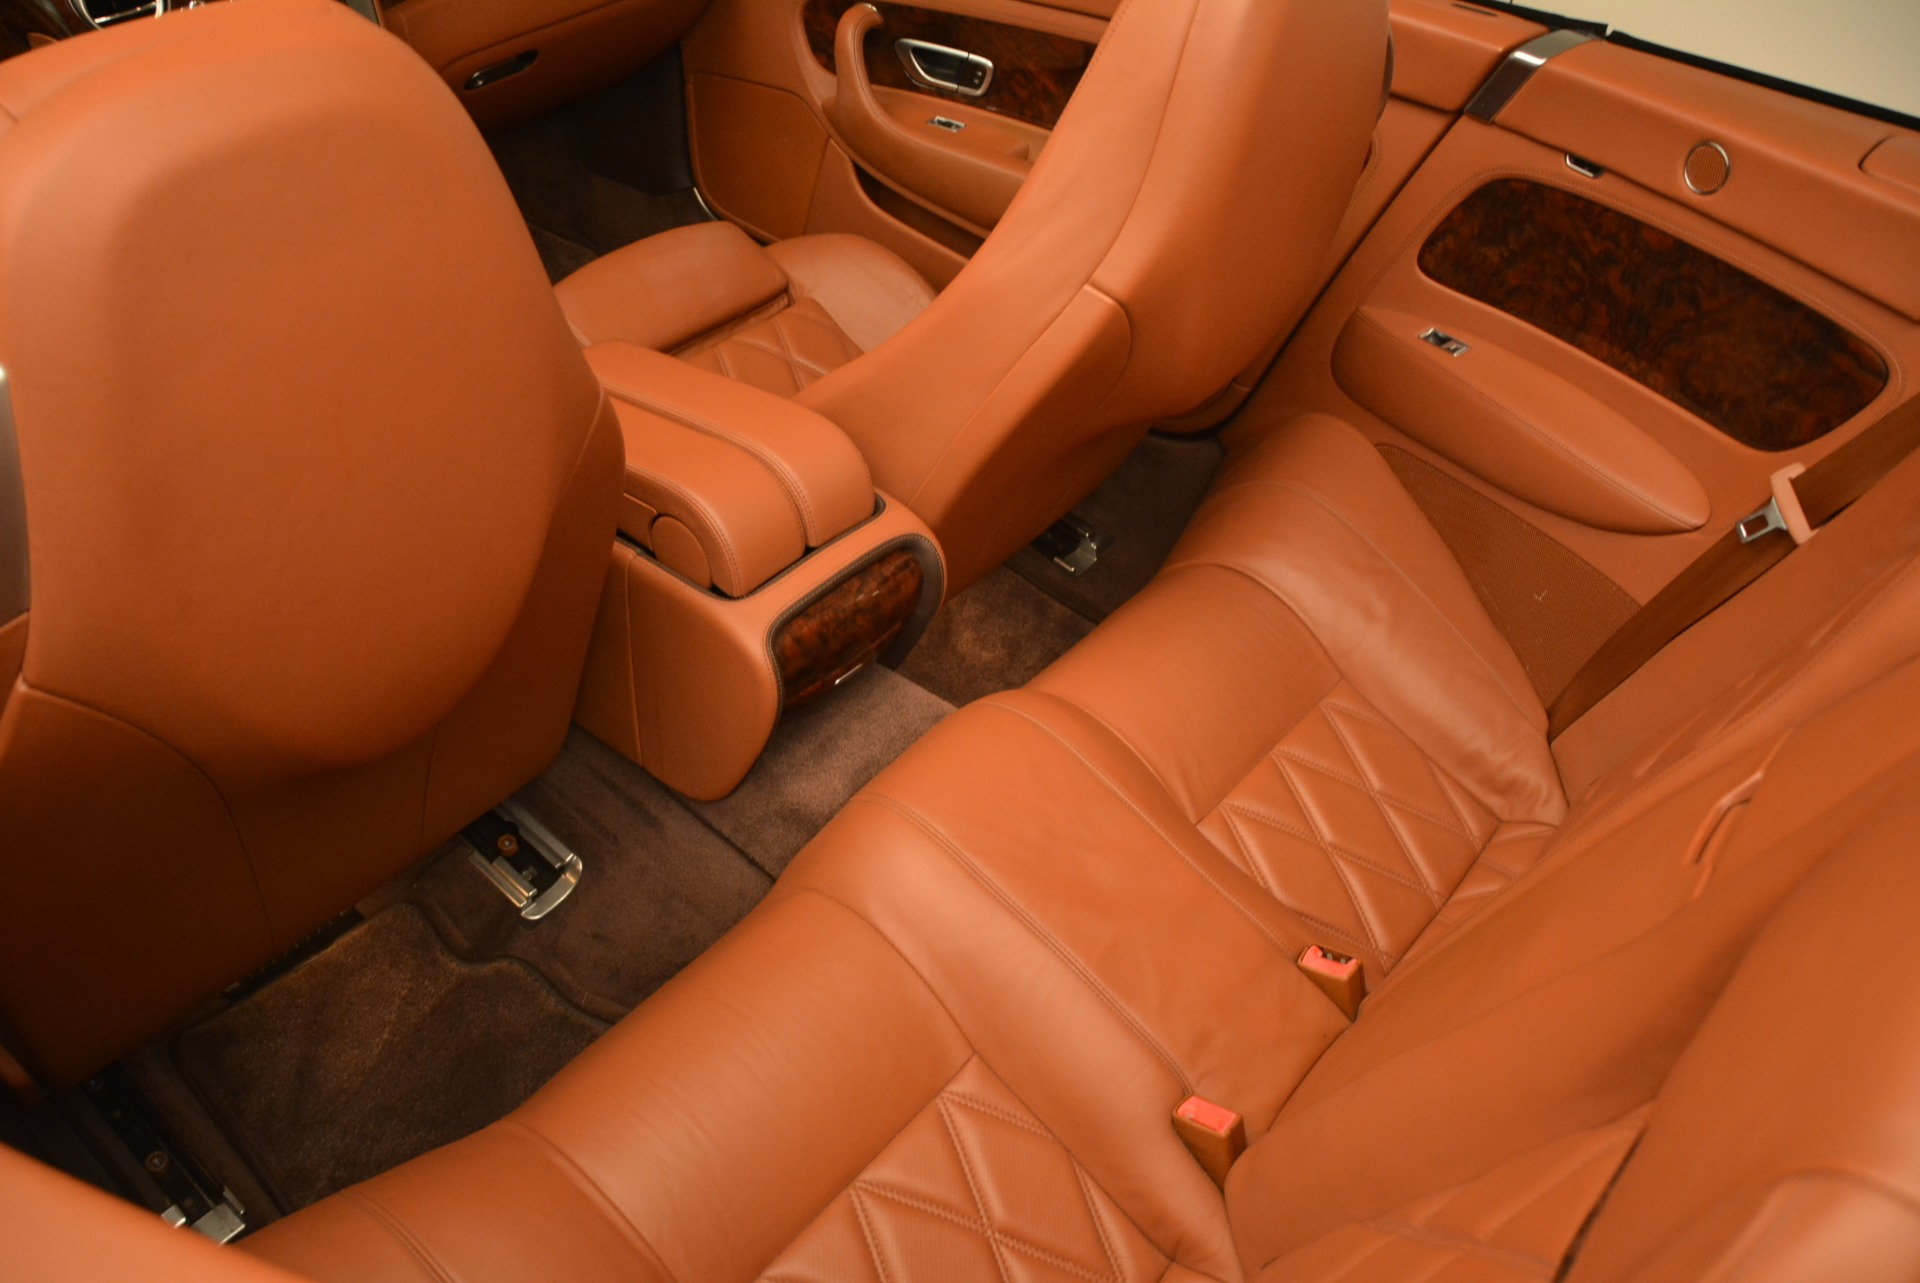 Used 2008 Bentley Continental GT W12 For Sale In Westport, CT 2190_p35